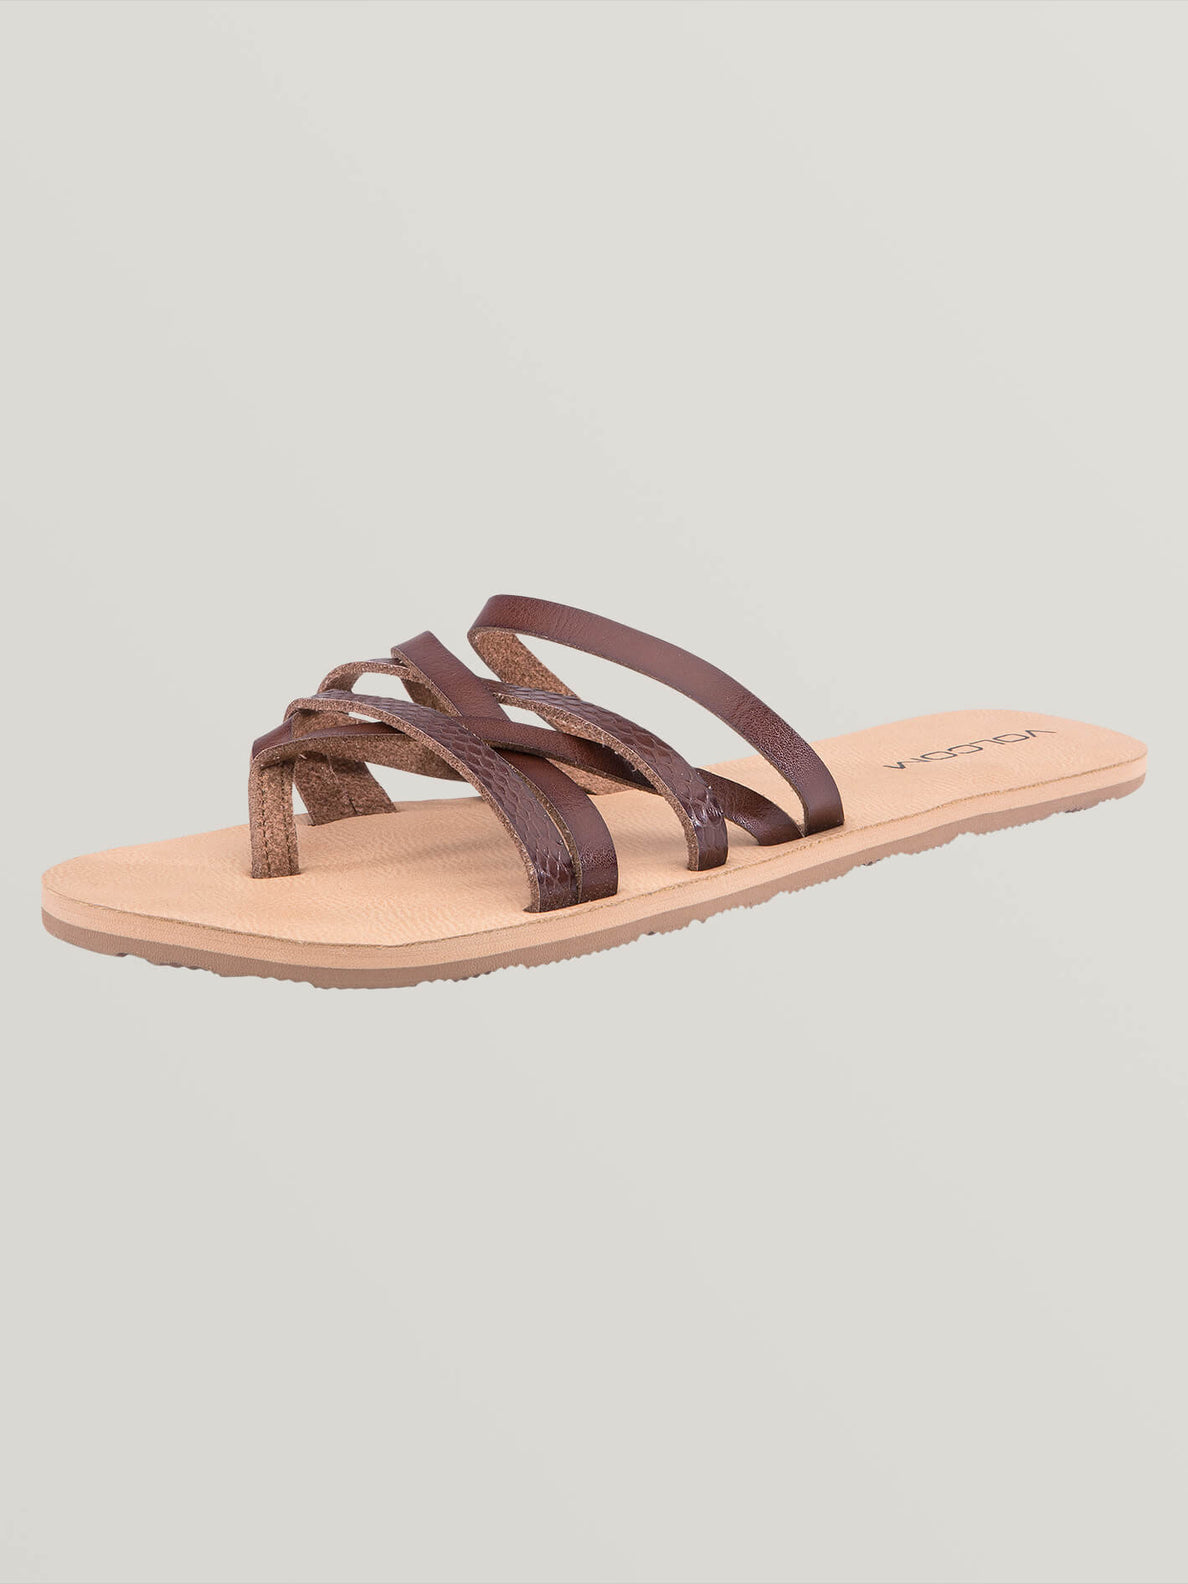 Legacy Sandals In Brown Combo, Back View